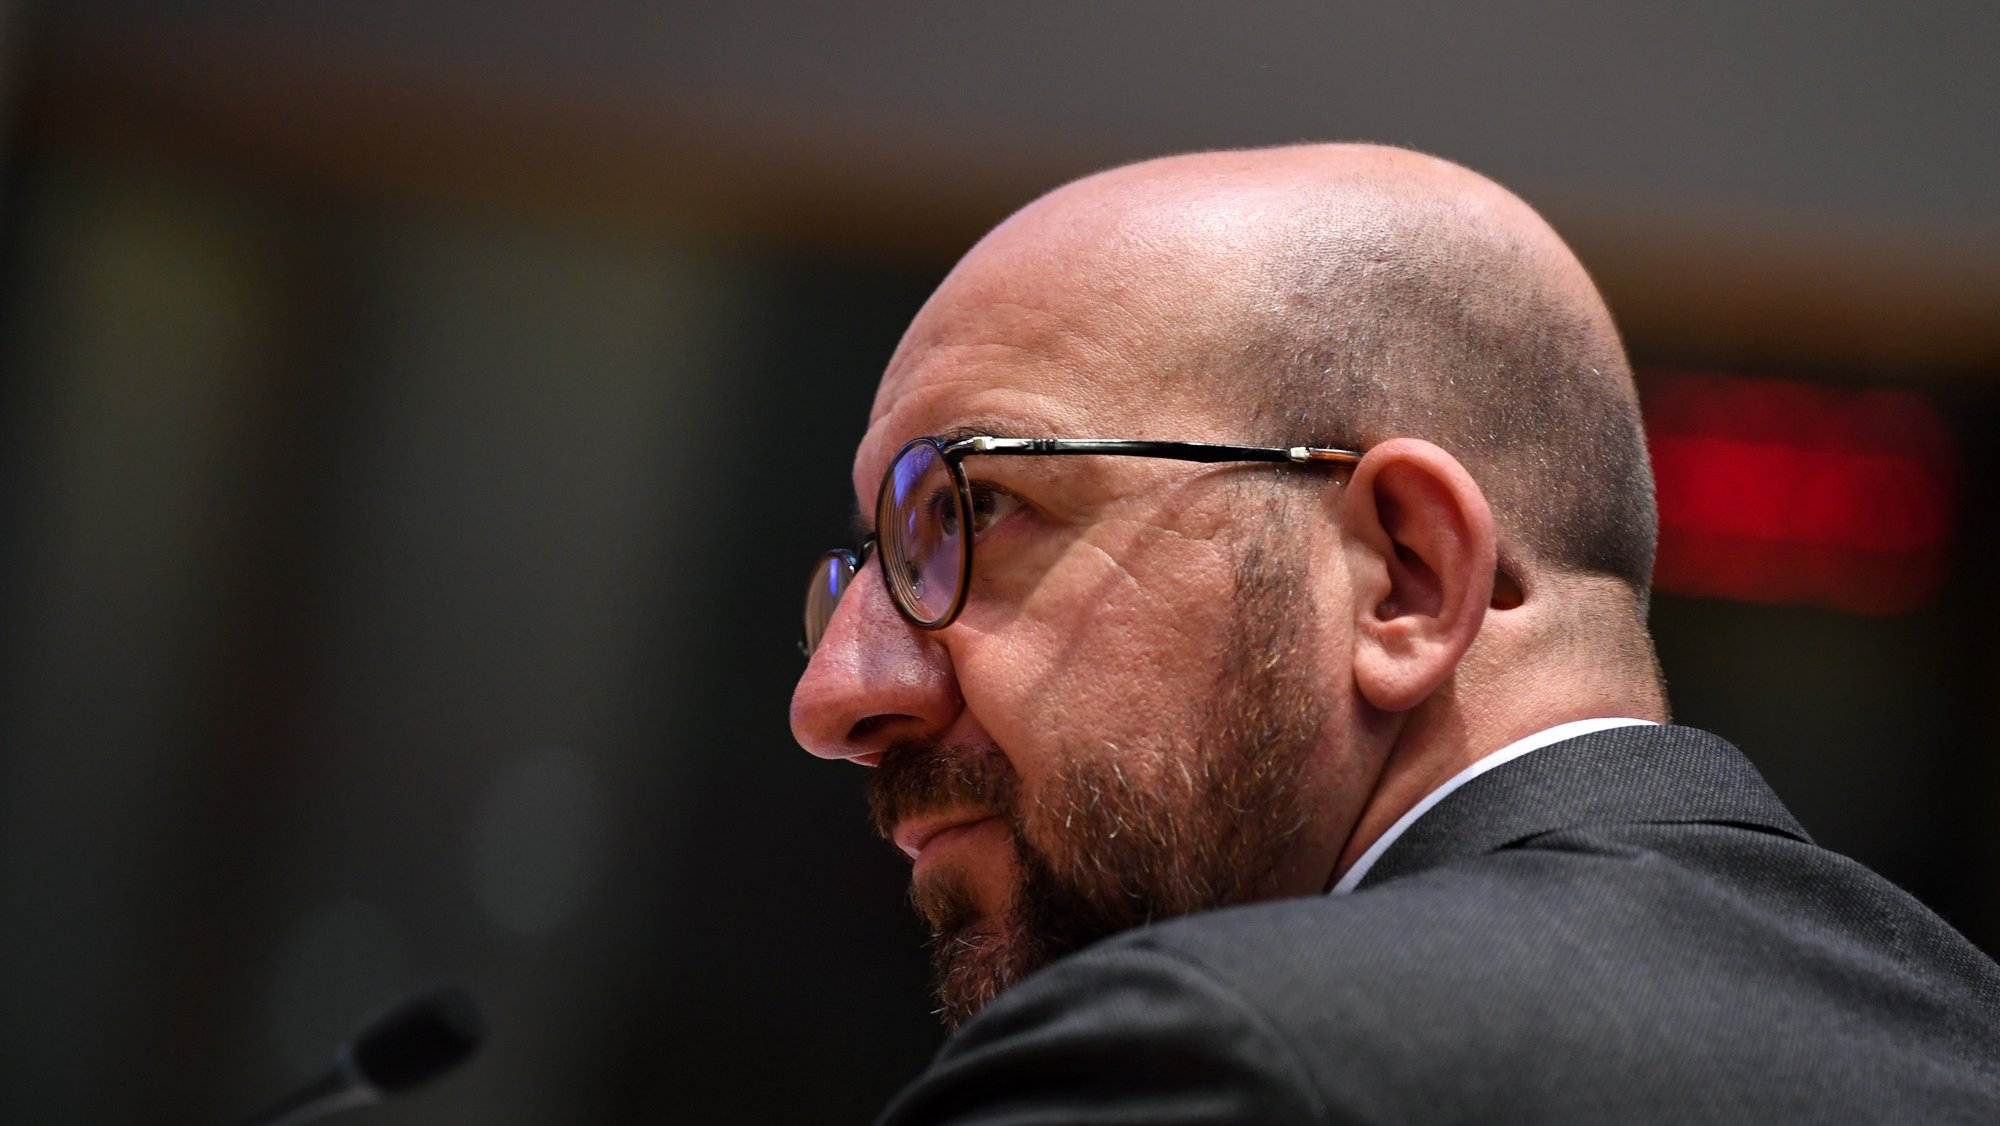 epa09343575 European Council President Charles Michel arrives for a video conference with Albanian Prime Minister Edi Rama at EU headquarters in Brussels, Belgium, 14 July 2021.  EPA/JOHN THYS / POOL